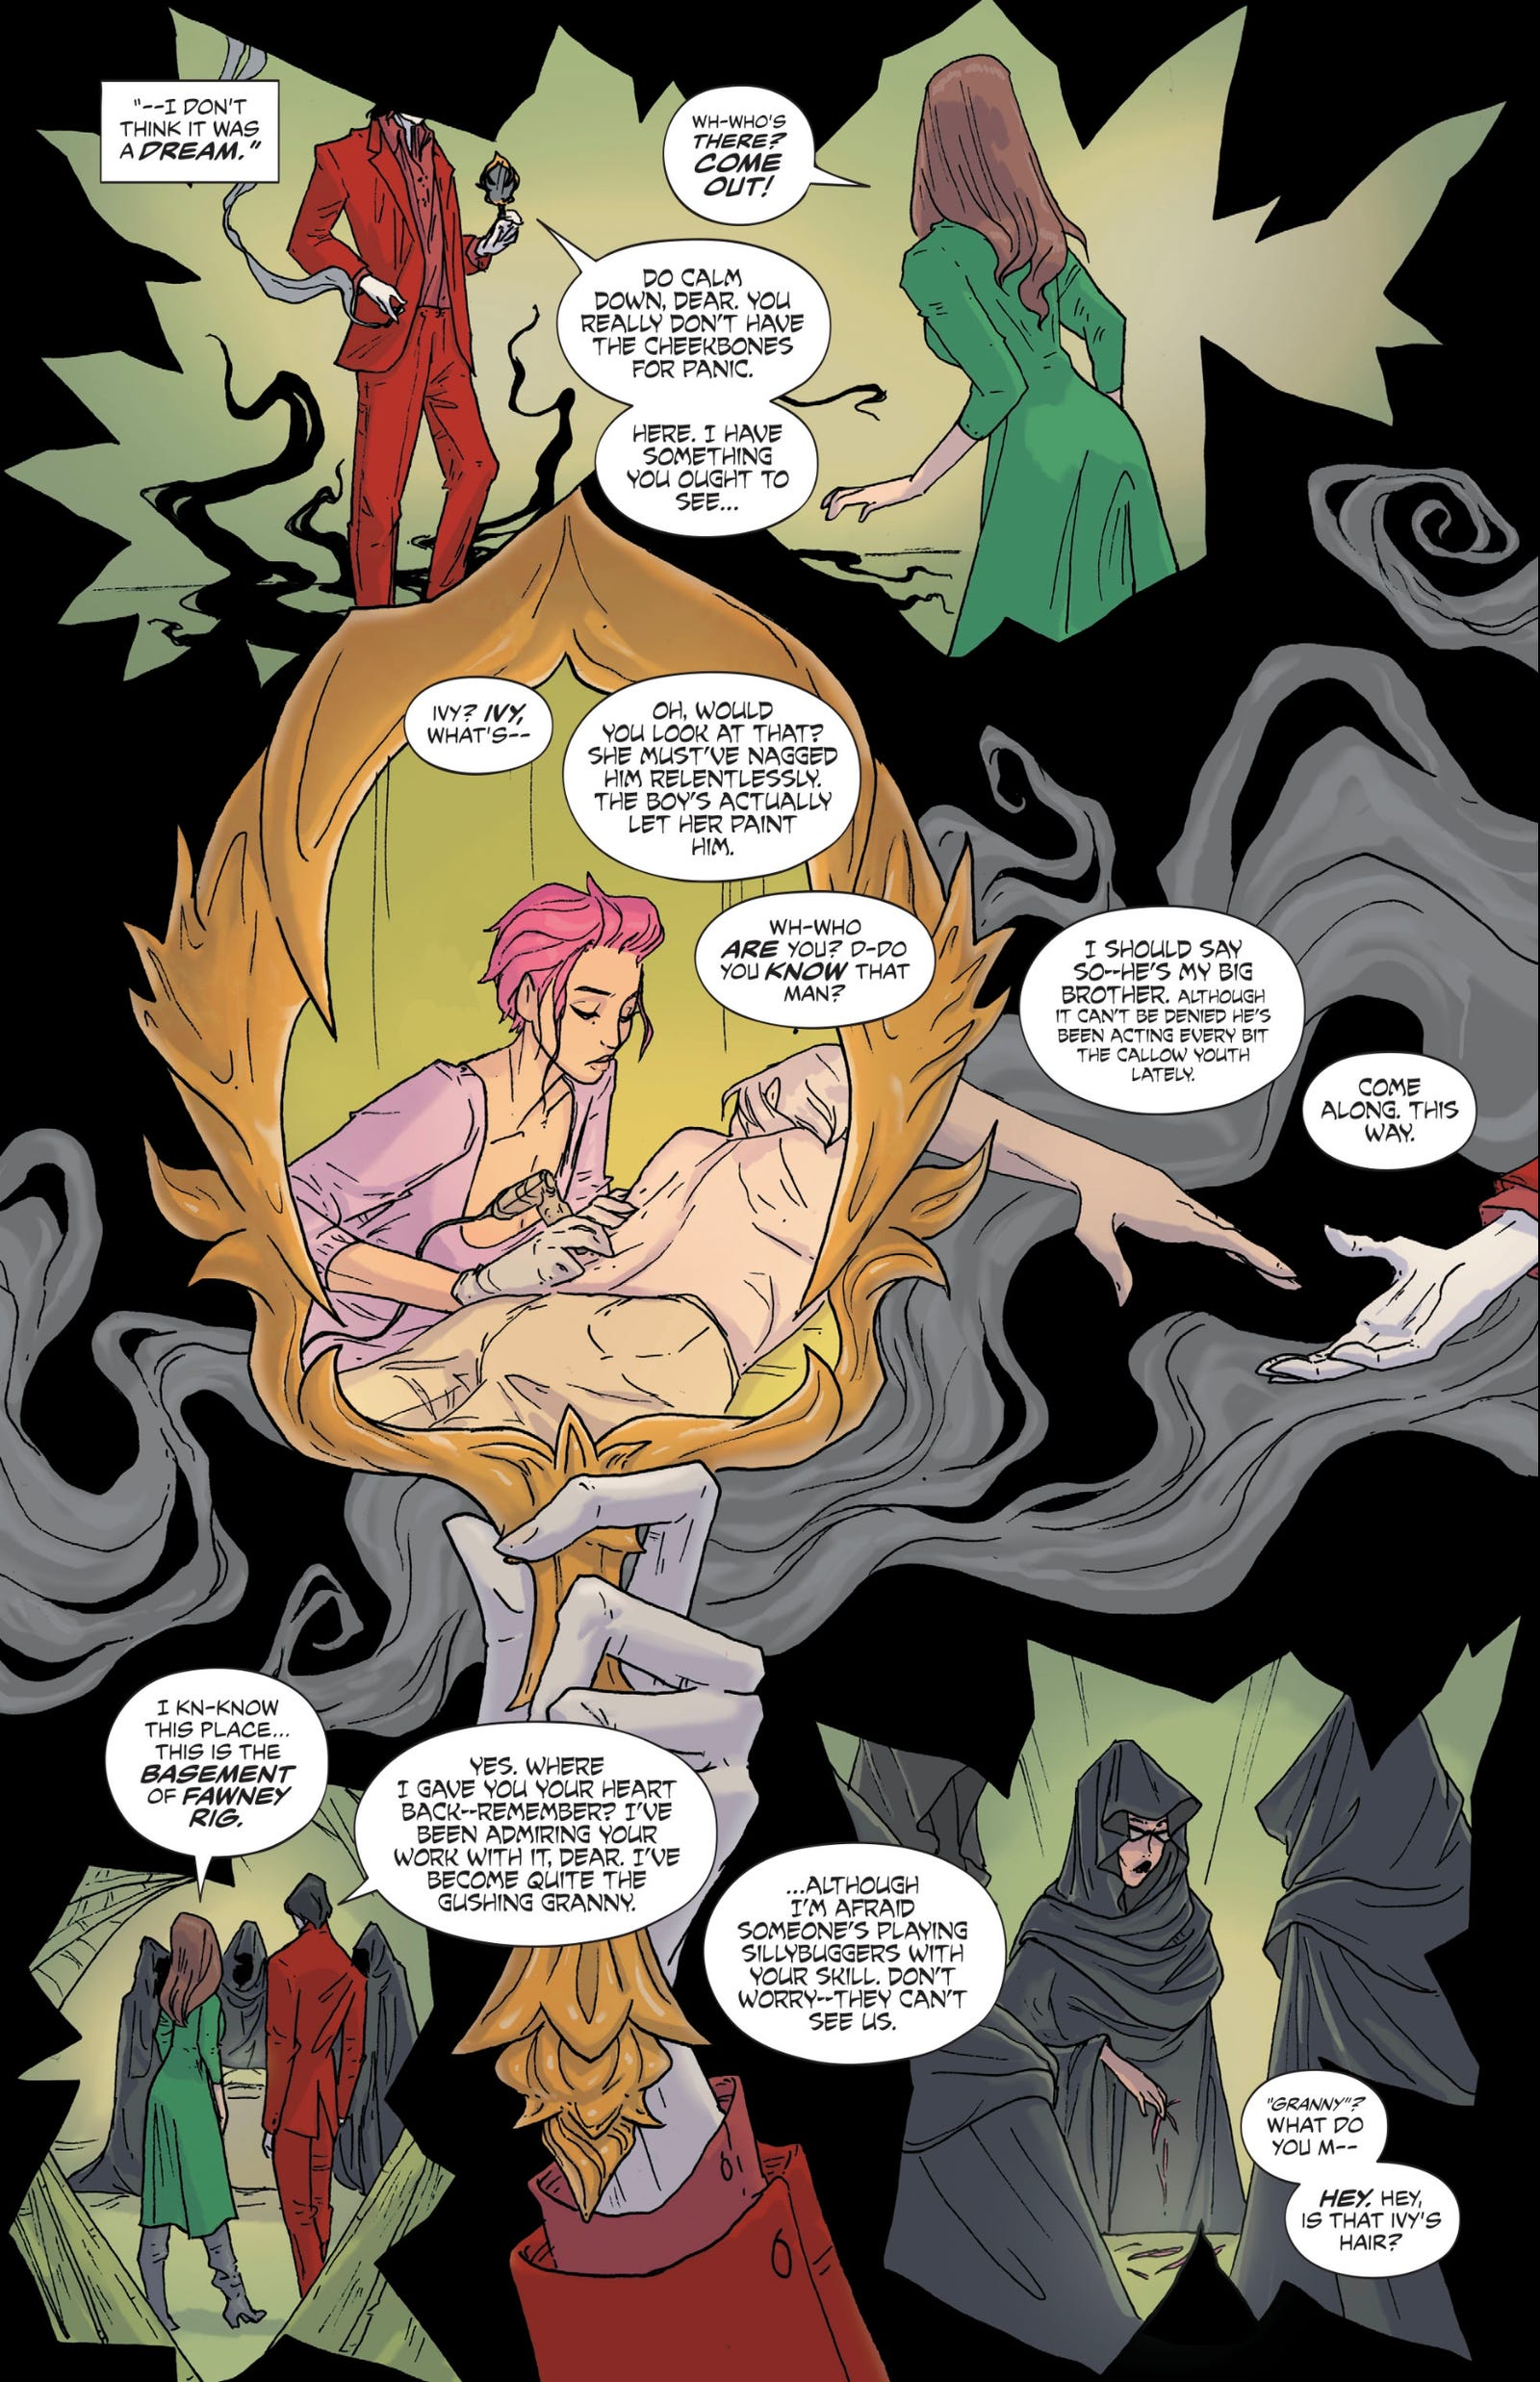 The Dreaming #8 art by Abigail Larson, Quinton Winter, and Simon Bowland